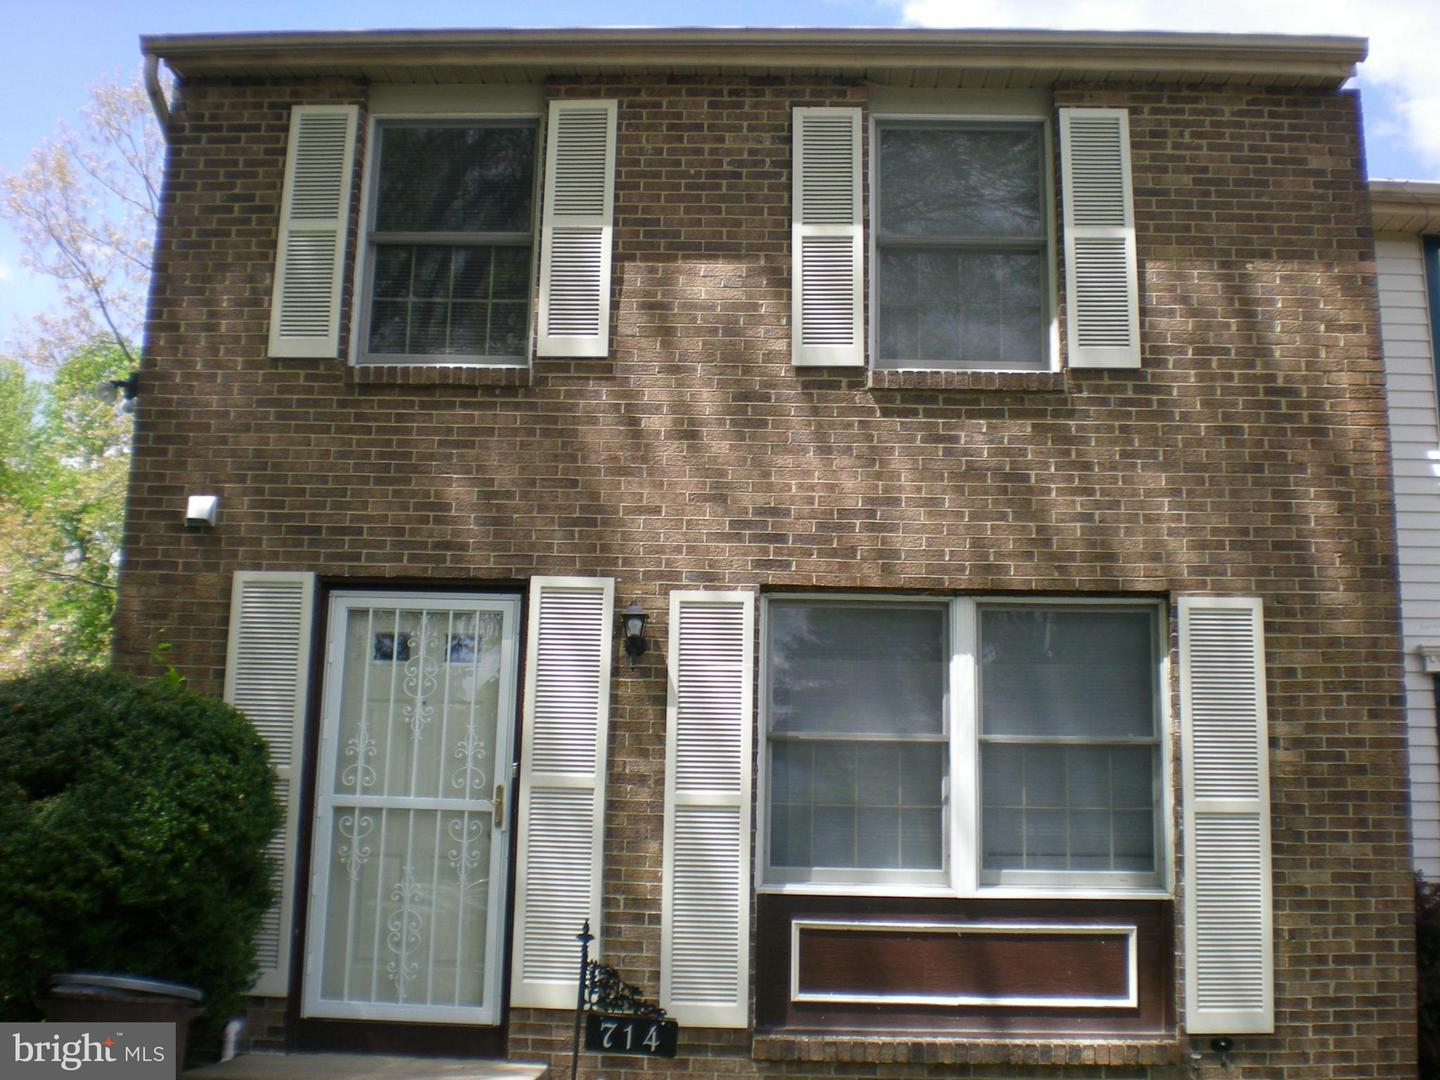 Other Residential for Rent at 714 Green Willow Pl Landover, Maryland 20785 United States